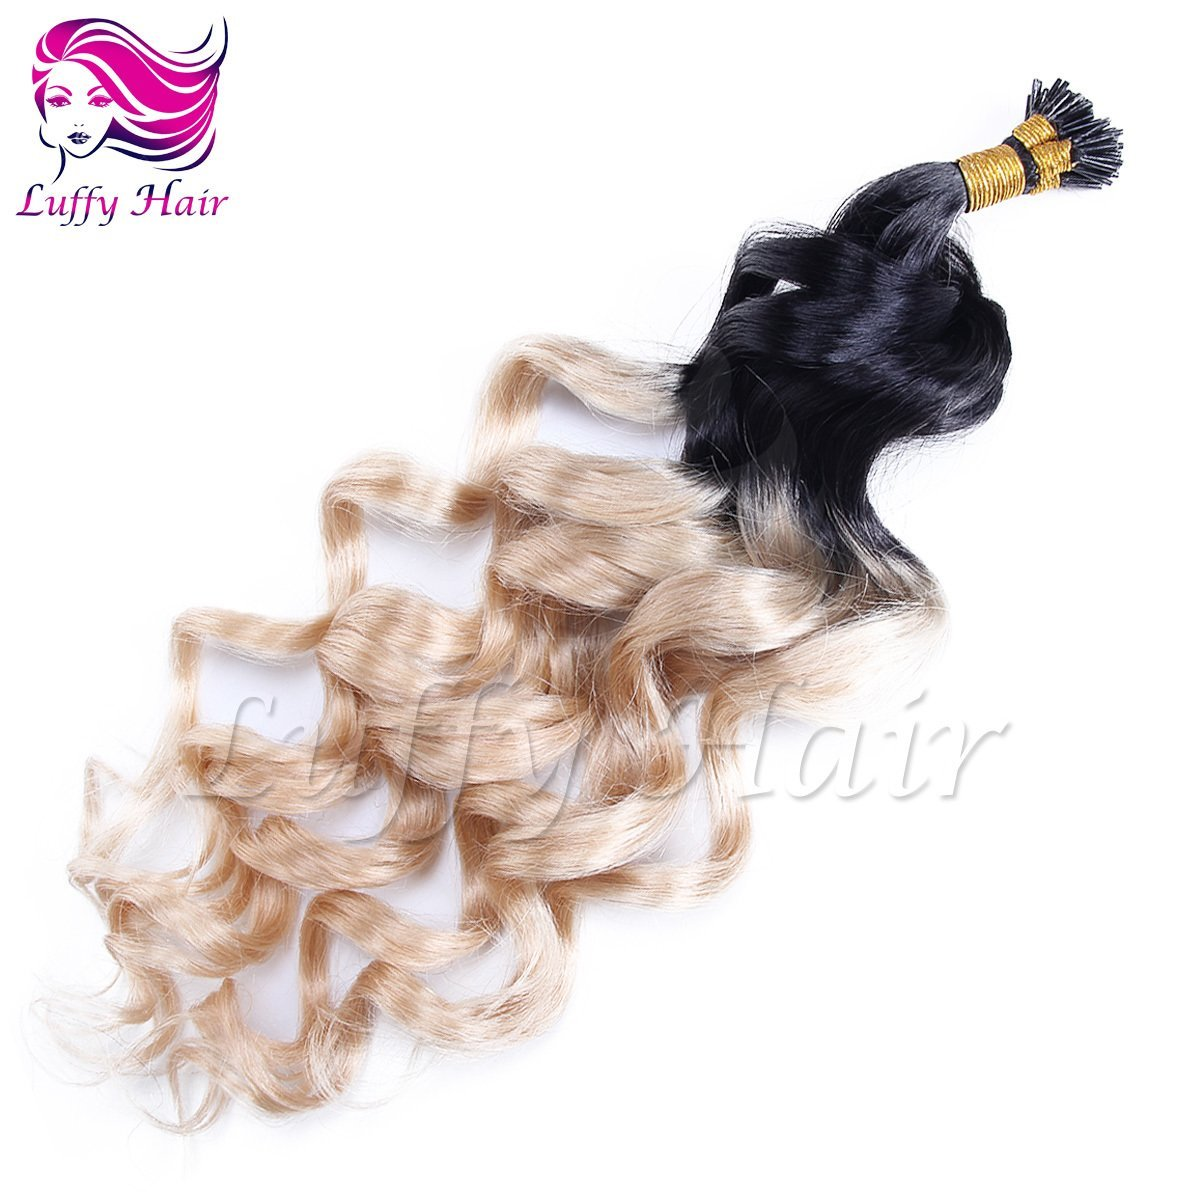 10A Virgin Human Hair Color #1B/#22 Ombre Body Wave Fusion Hair Extensions - KFL015